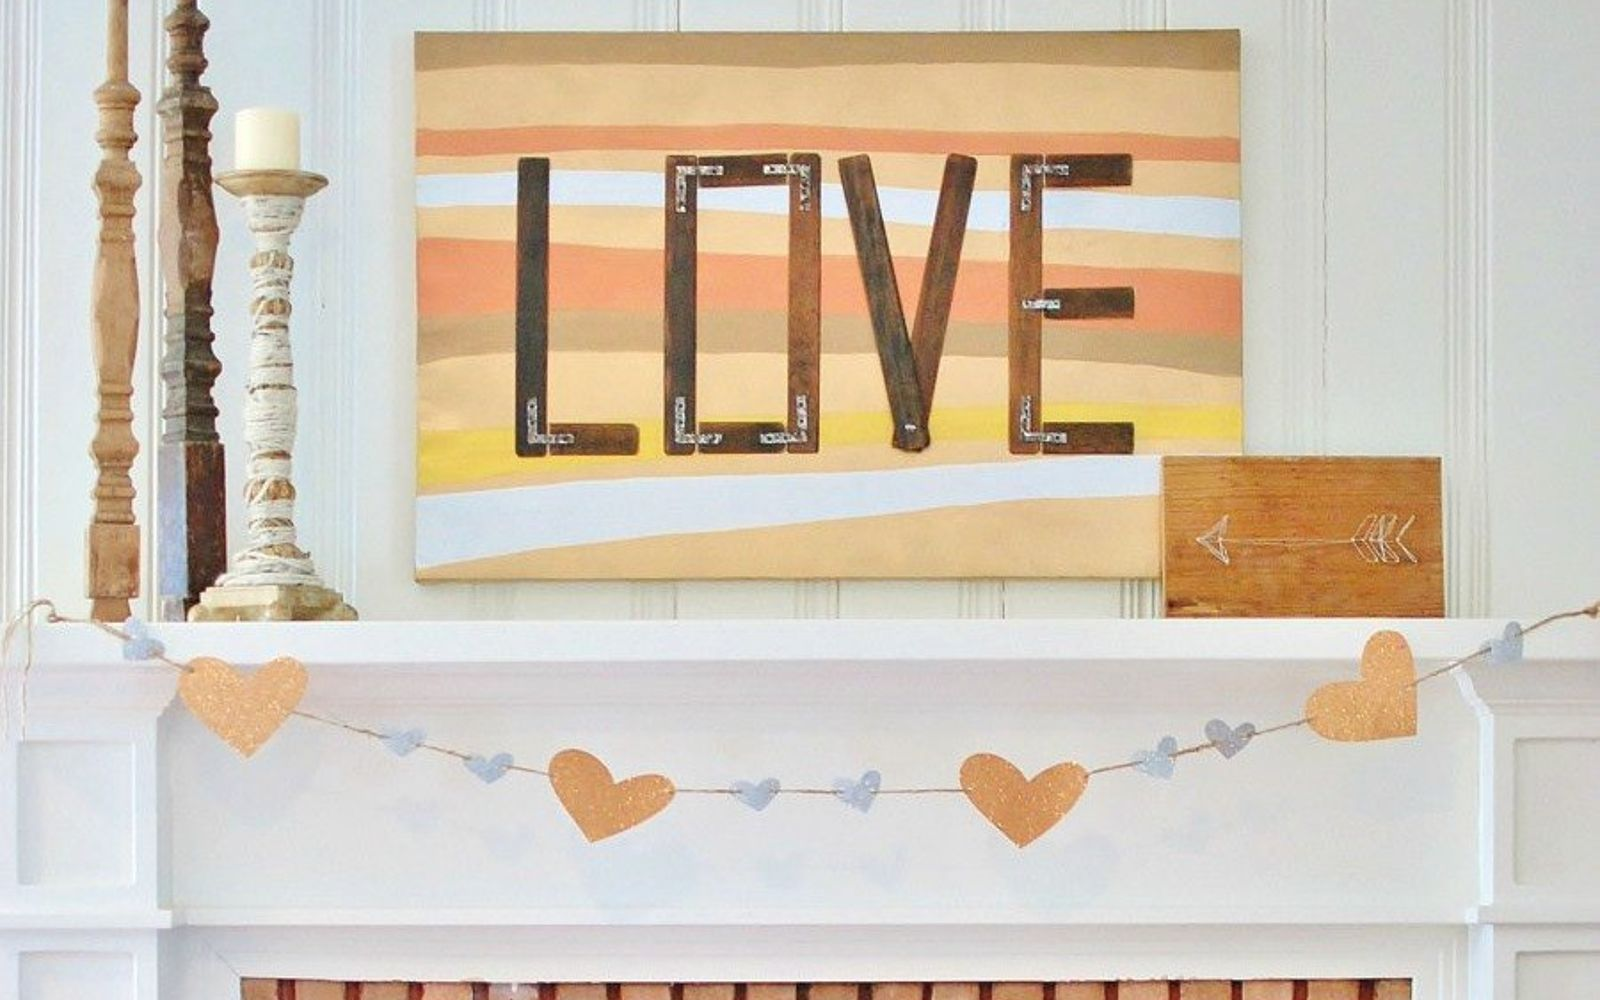 s how 13 dumpster divers decorate for valentine s day, repurposing upcycling, seasonal holiday decor, valentines day ideas, Mixed Metal Mantel Art from an Old Shutter